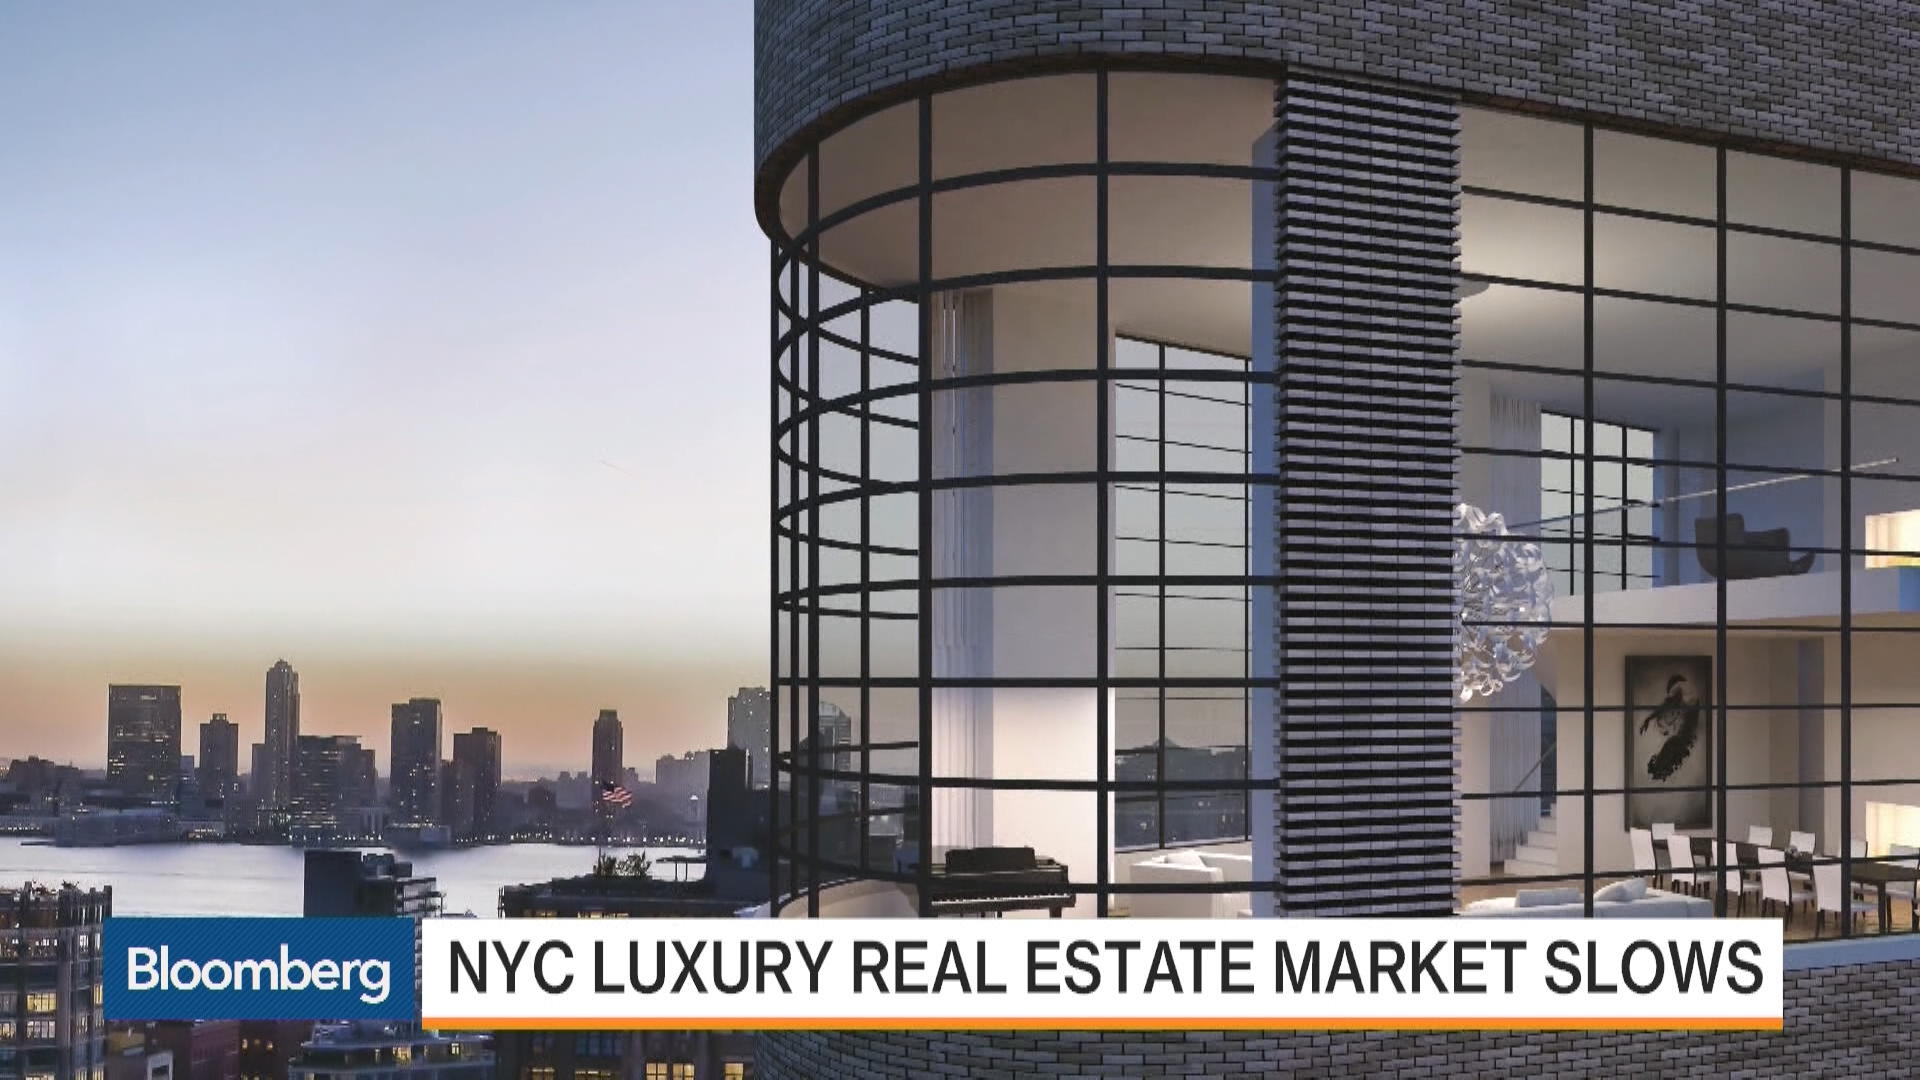 Nyc luxury real estate market slows bloomberg for Luxury nyc real estate